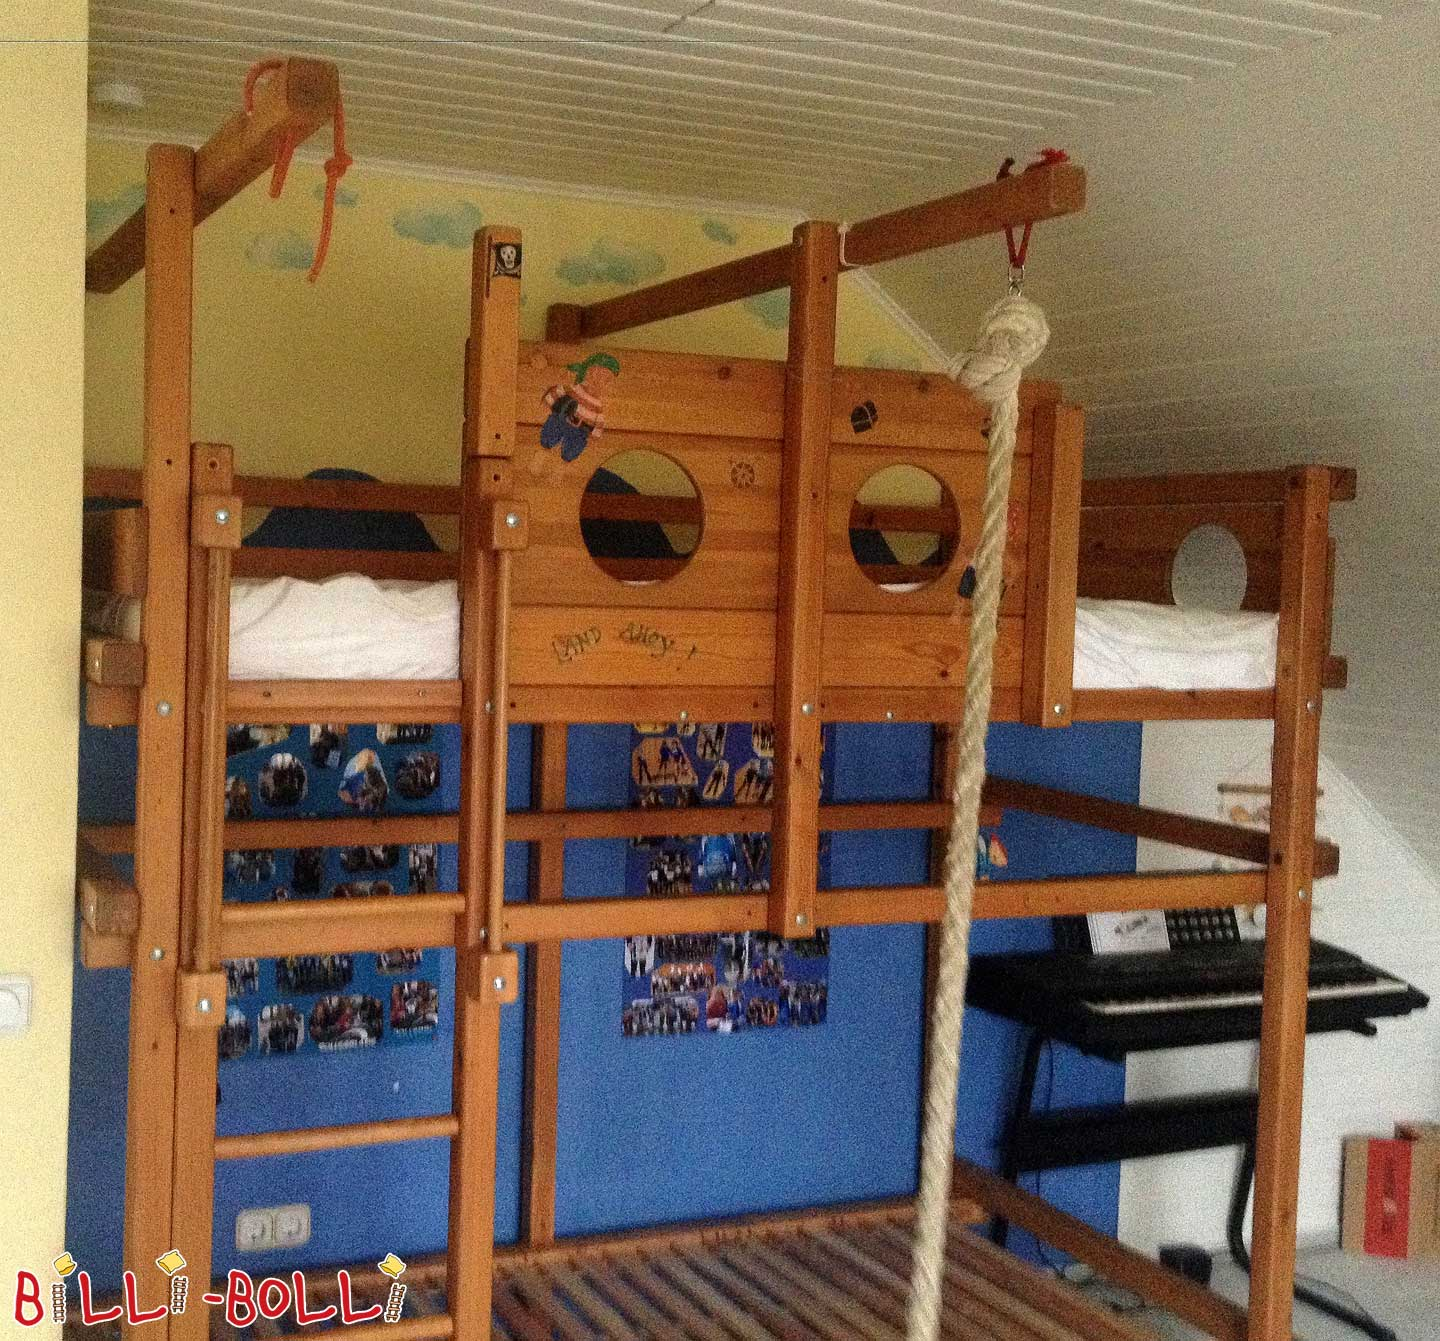 Gullibo Pirate's High Bed/Bunkbed (second hand loft bed)